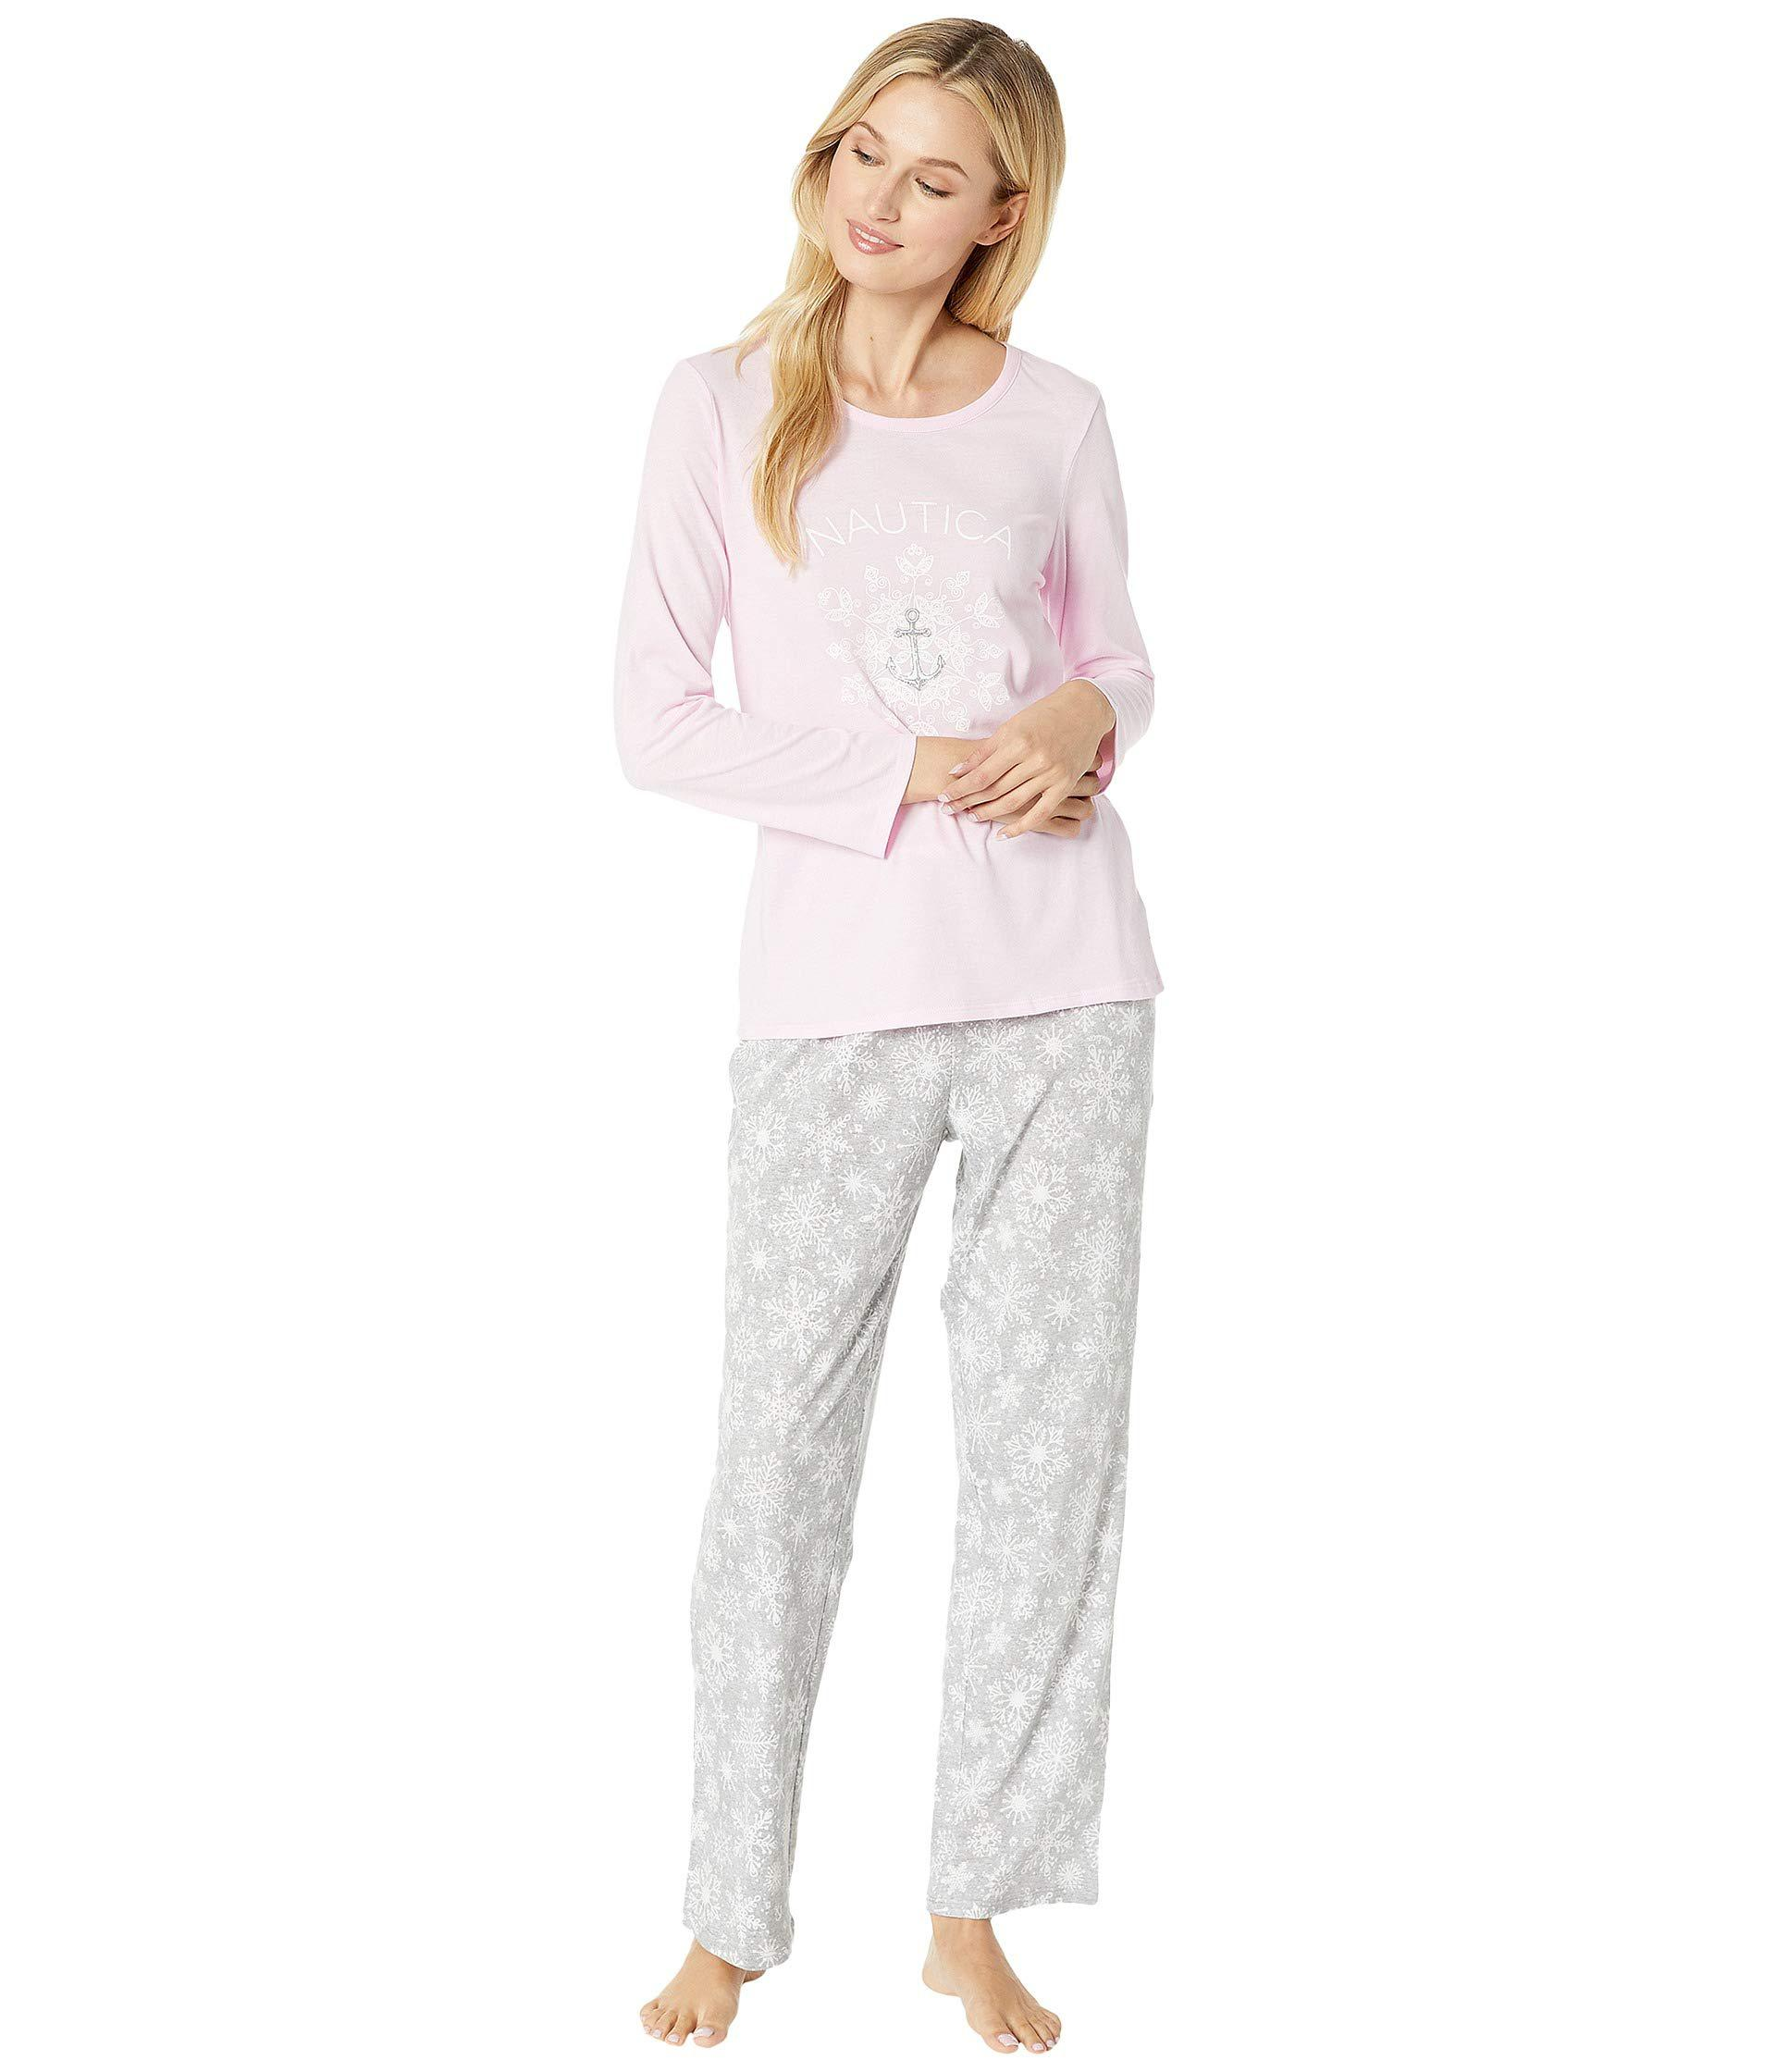 Lyst - Nautica Graphic Pajama Set in Gray - Save 38% cd33c3cce